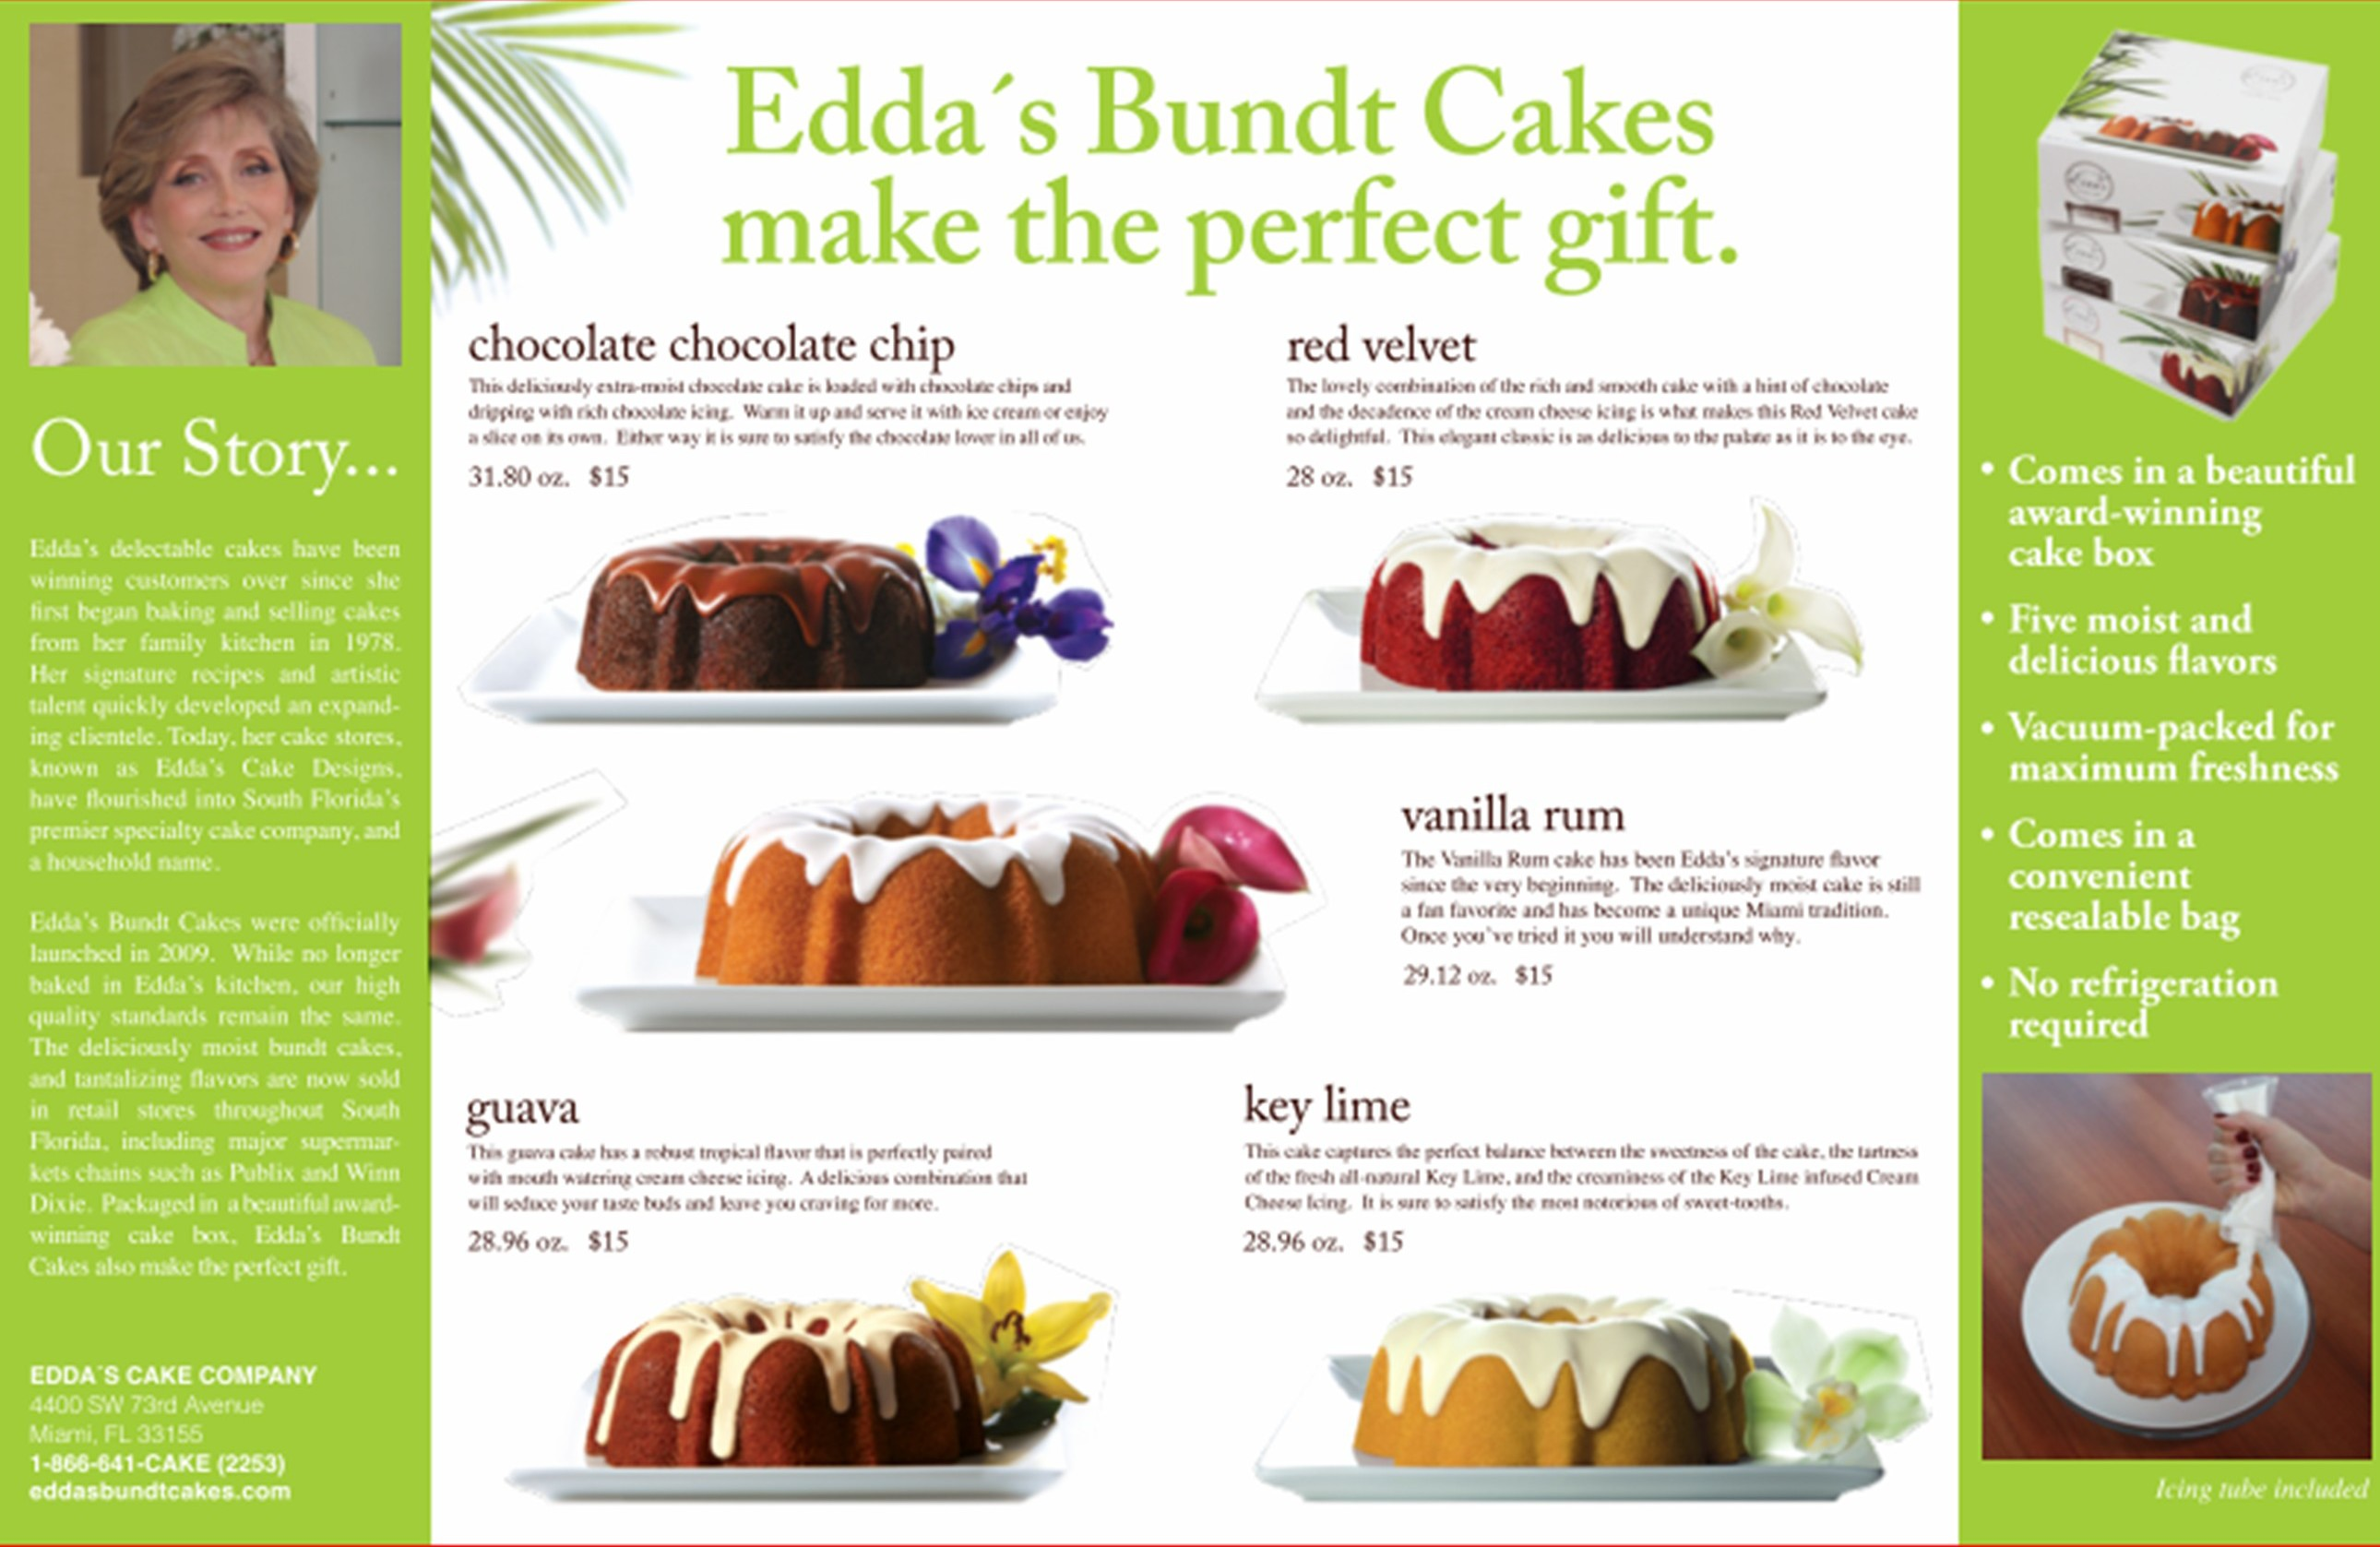 10 Photos Of Edda S Bundt Cakes